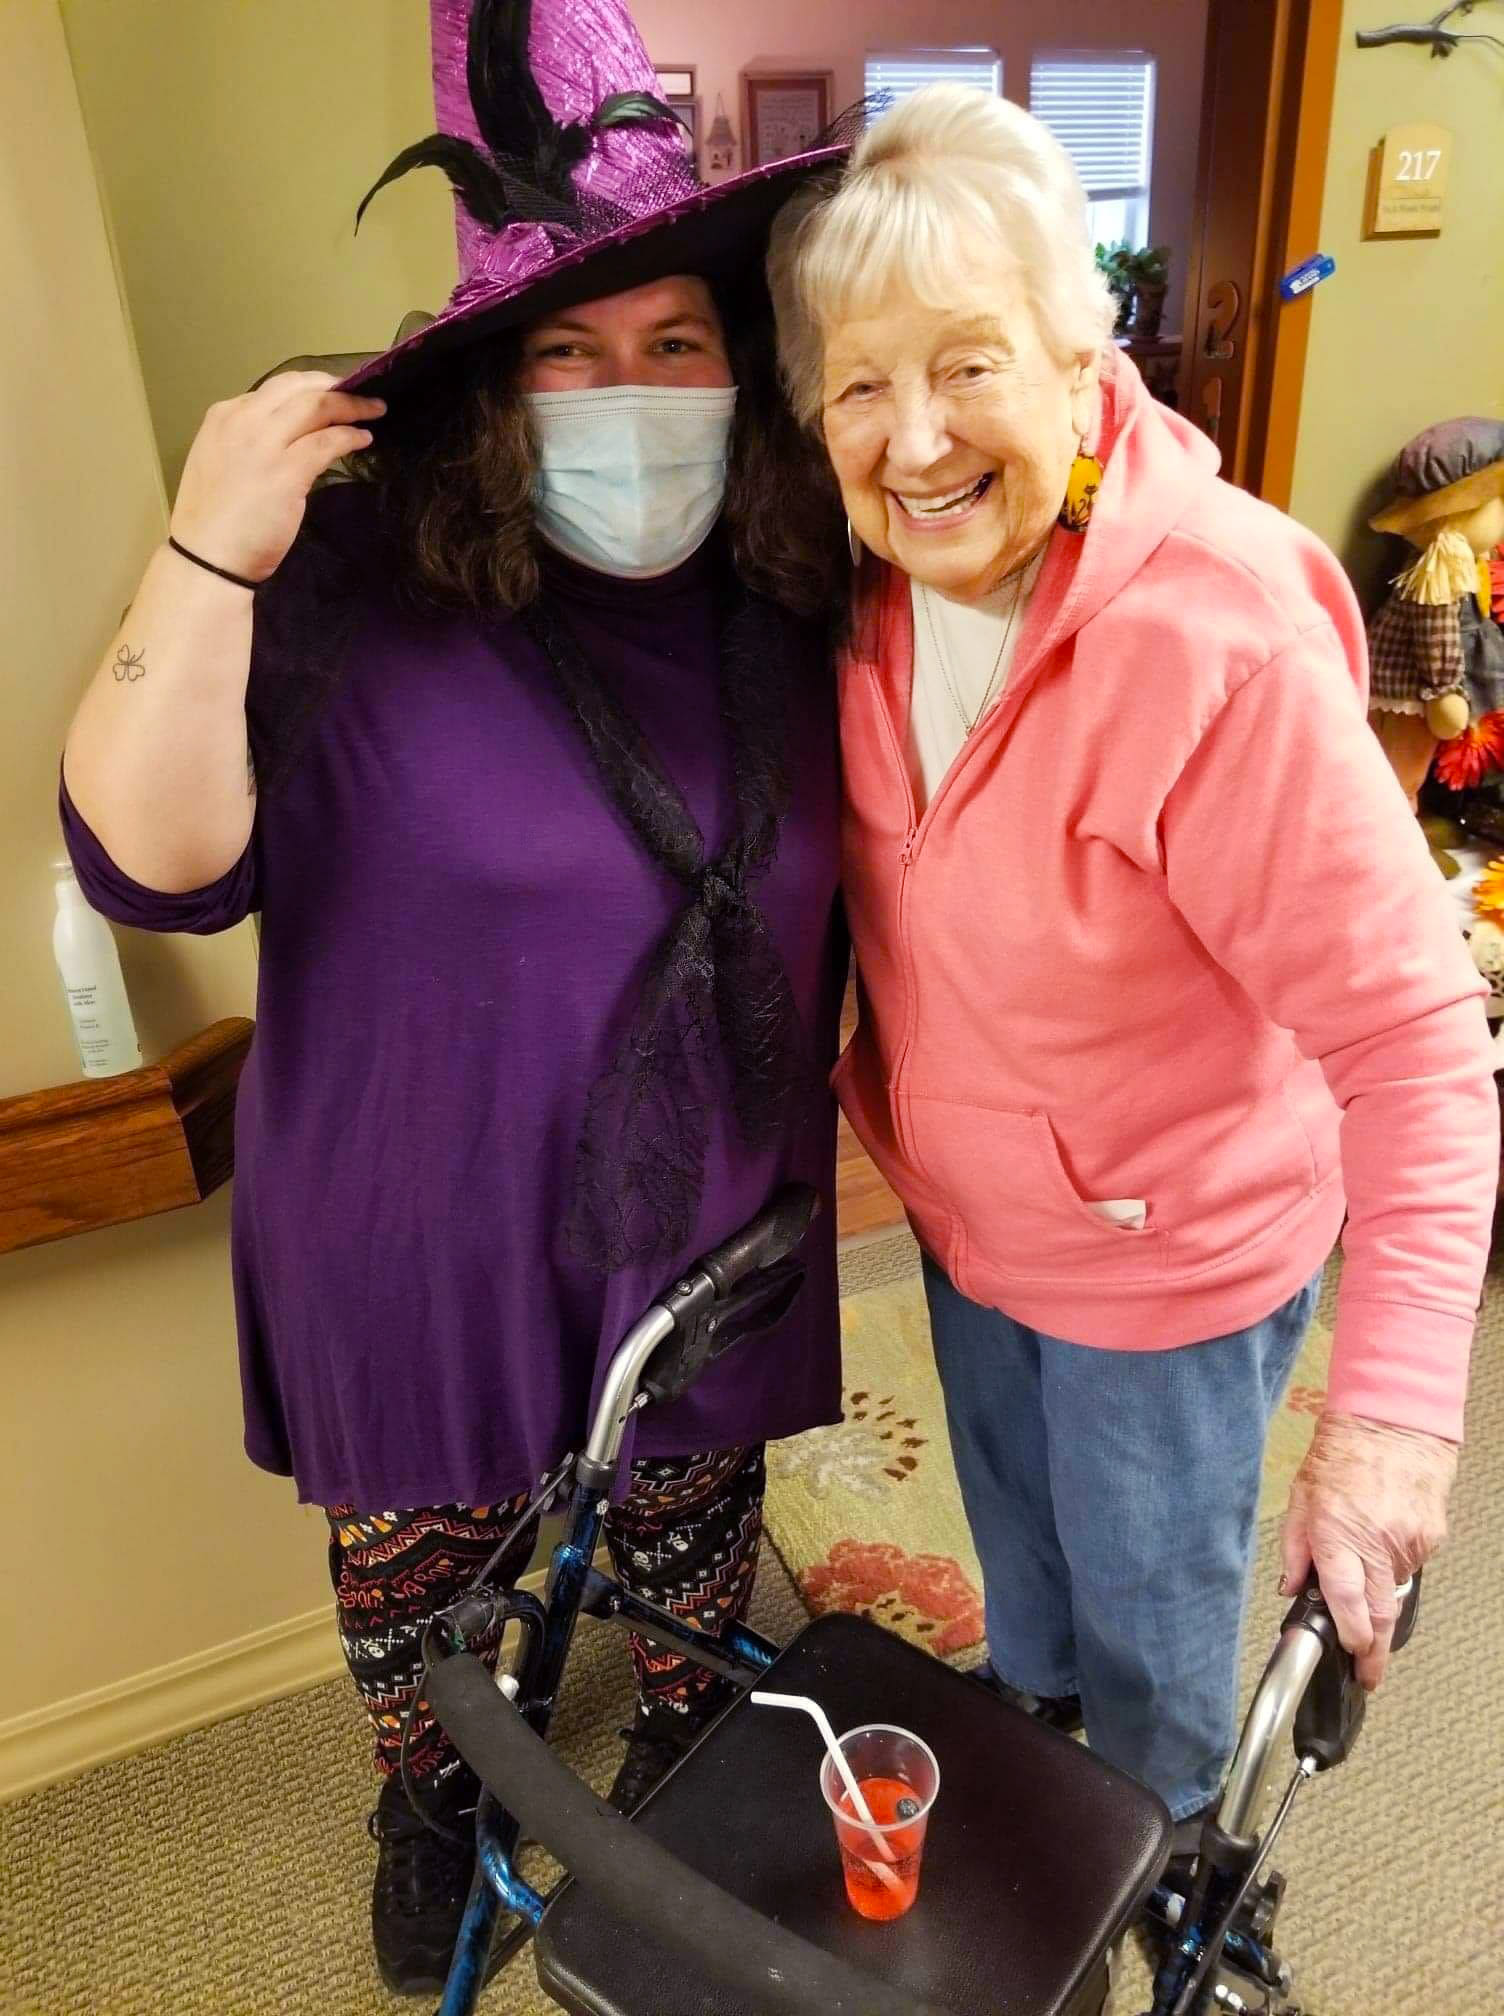 Masked caregiver in a witch costume side-hugging a resident at The Oxford Grand Assisted Living & Memory Care in Wichita, Kansas